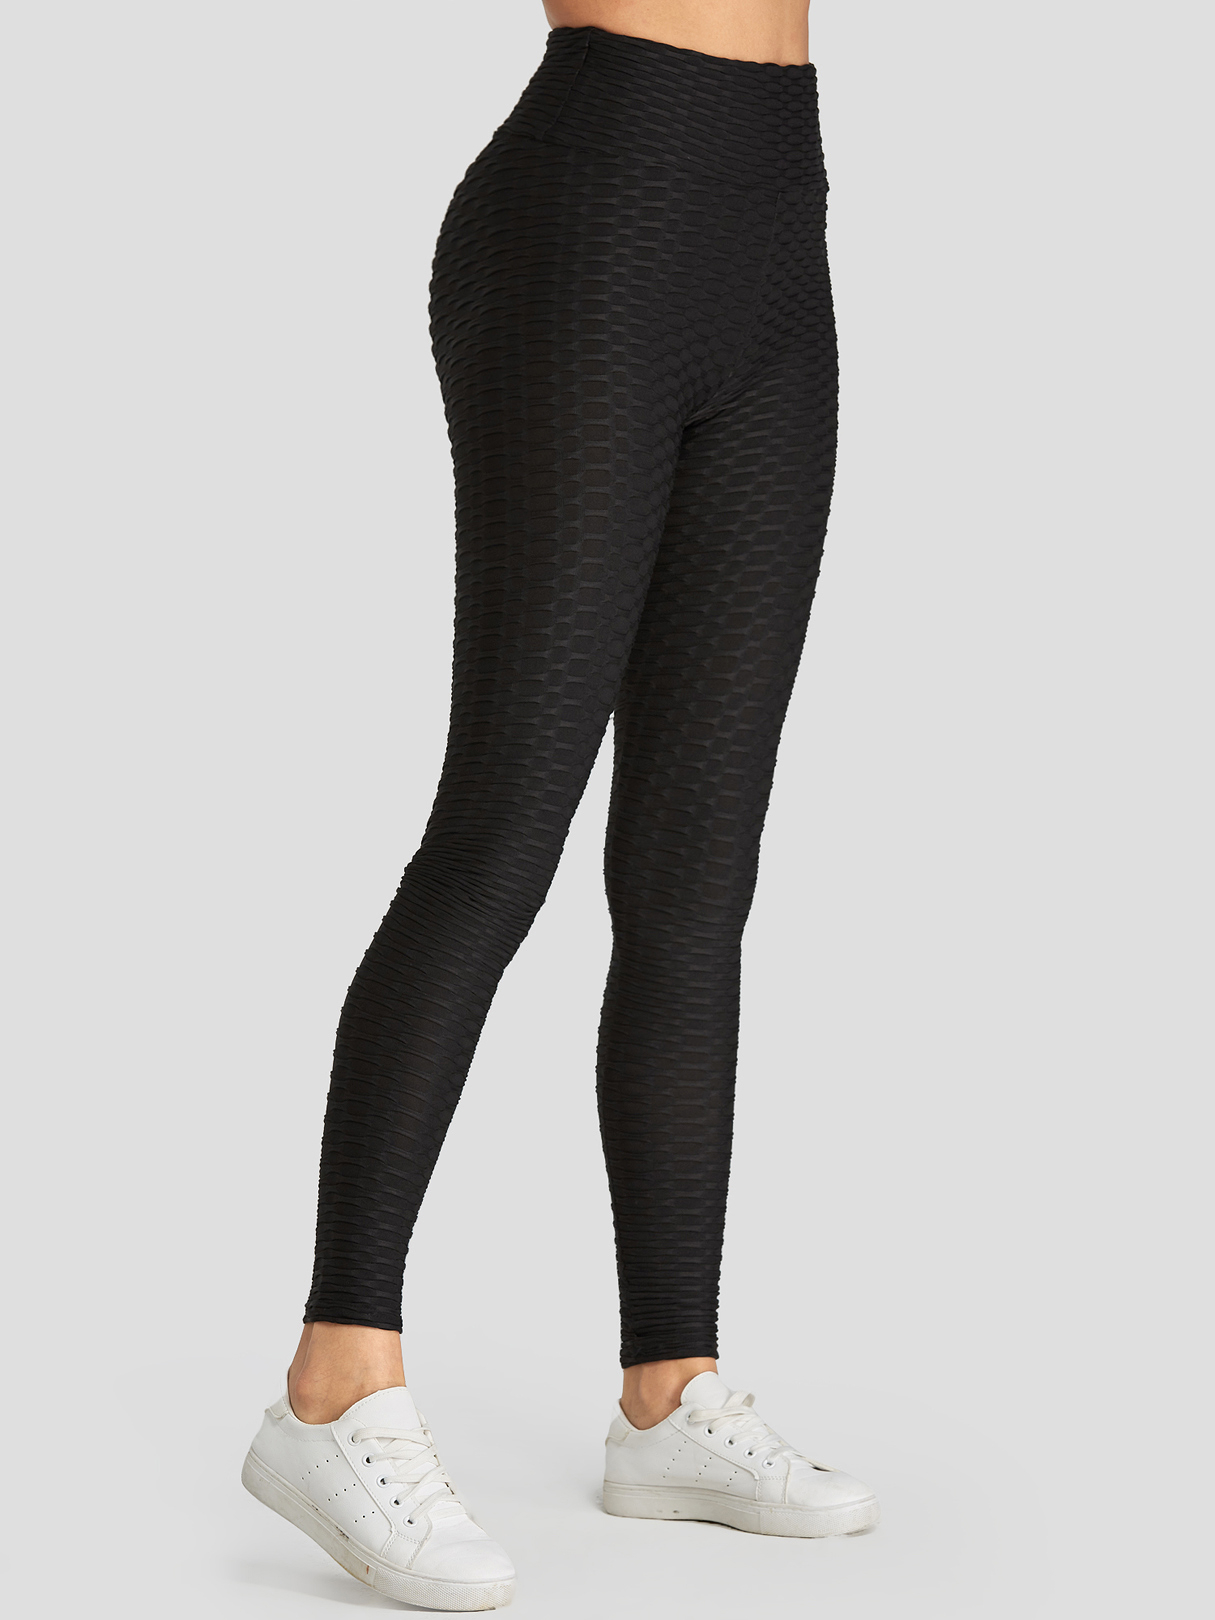 Black Plain Breathable Sweat-absorbing Buttock Lifting Pants